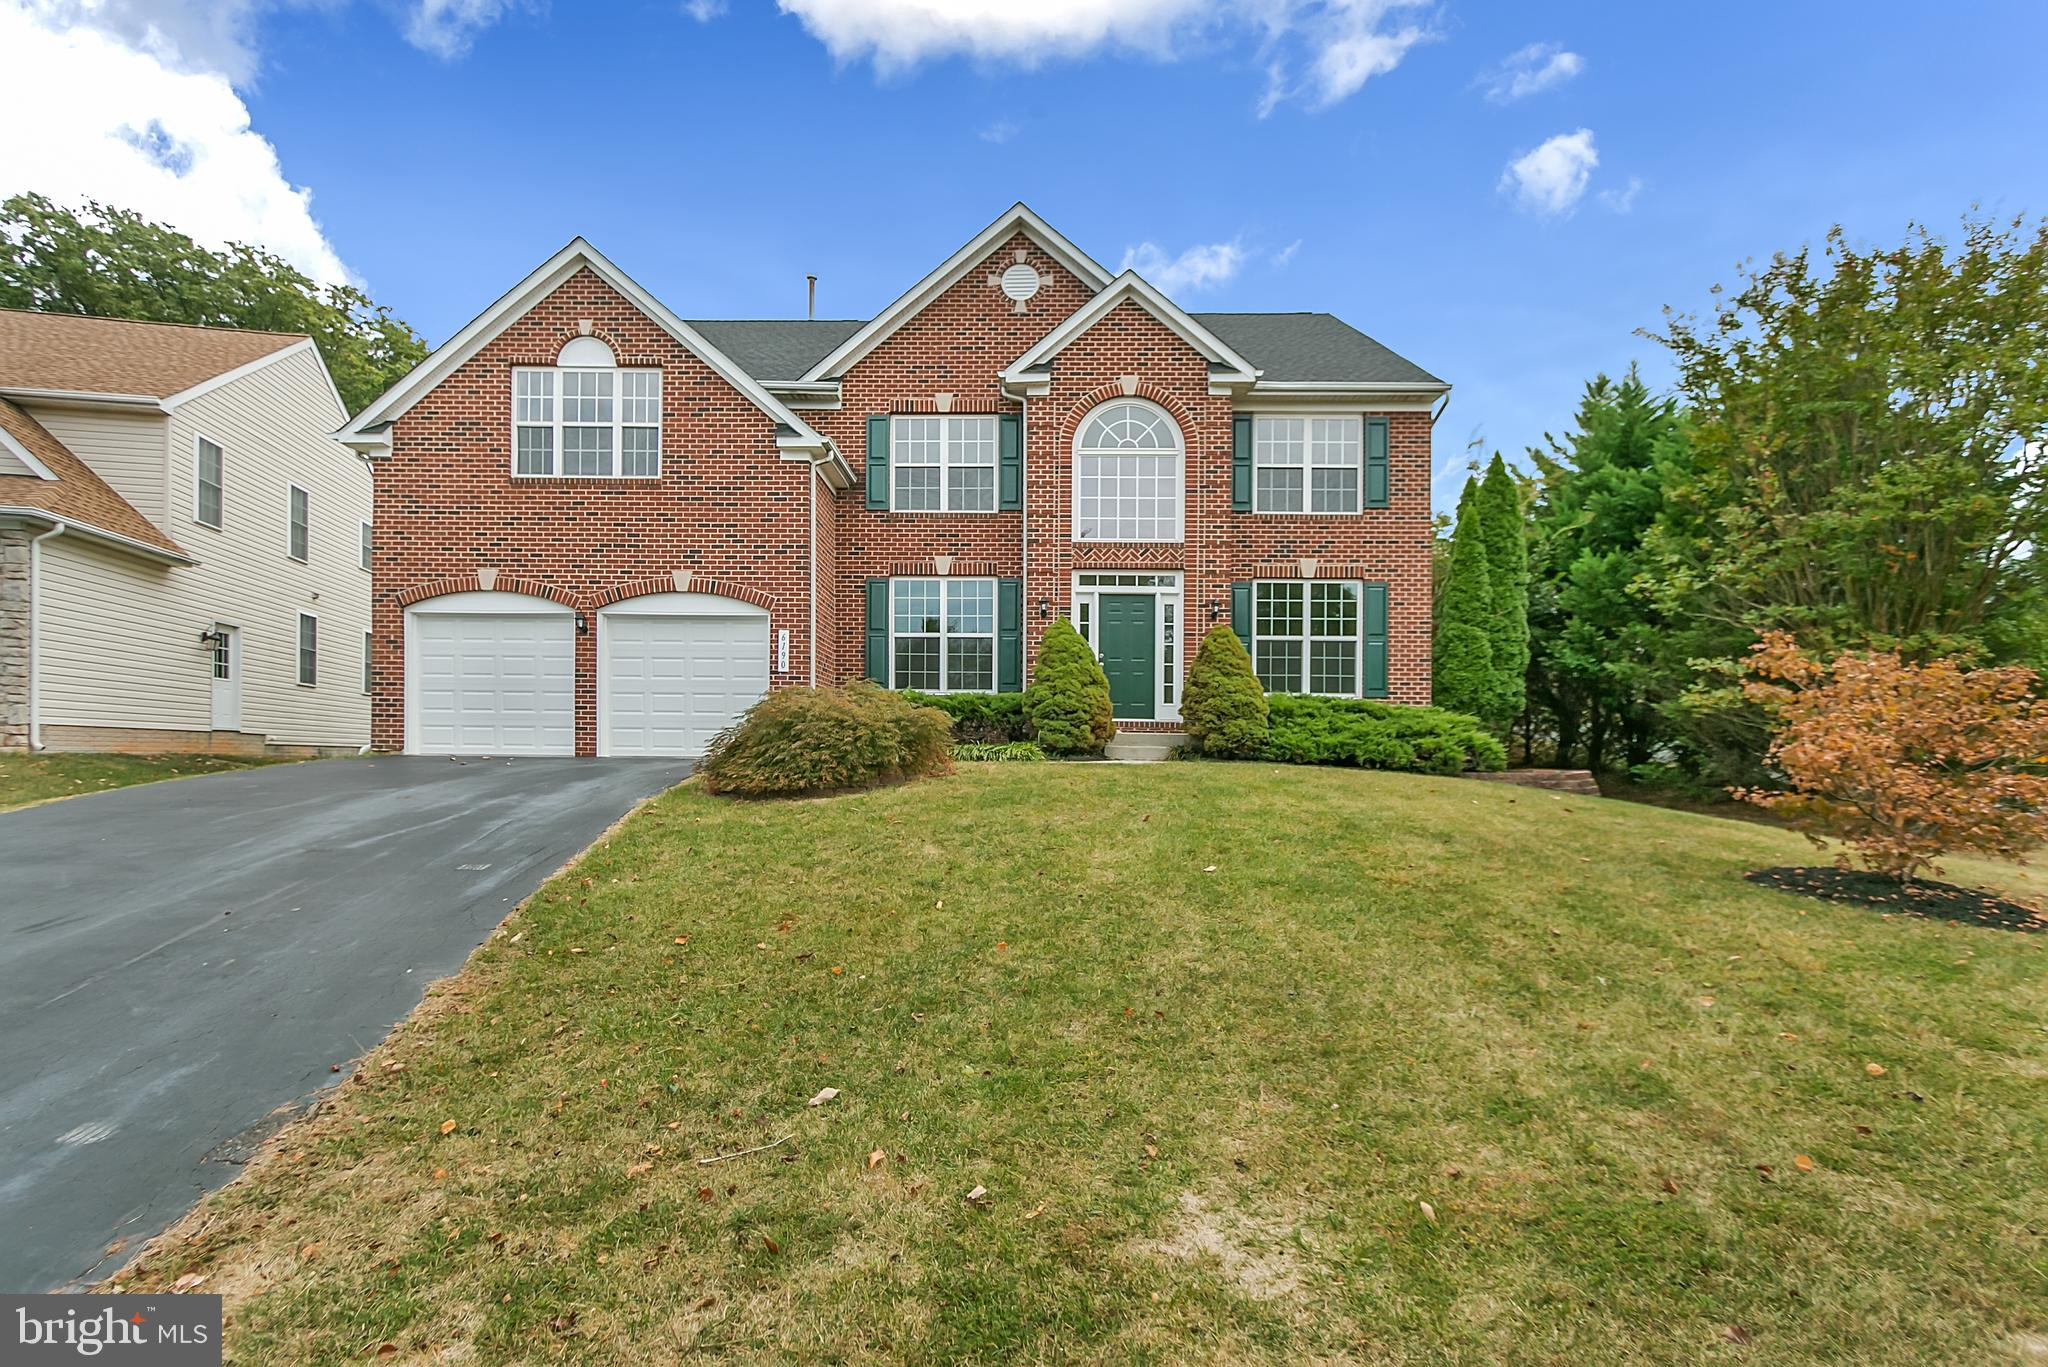 6190 DOWNS RIDGE COURT, ELKRIDGE, MD 21075